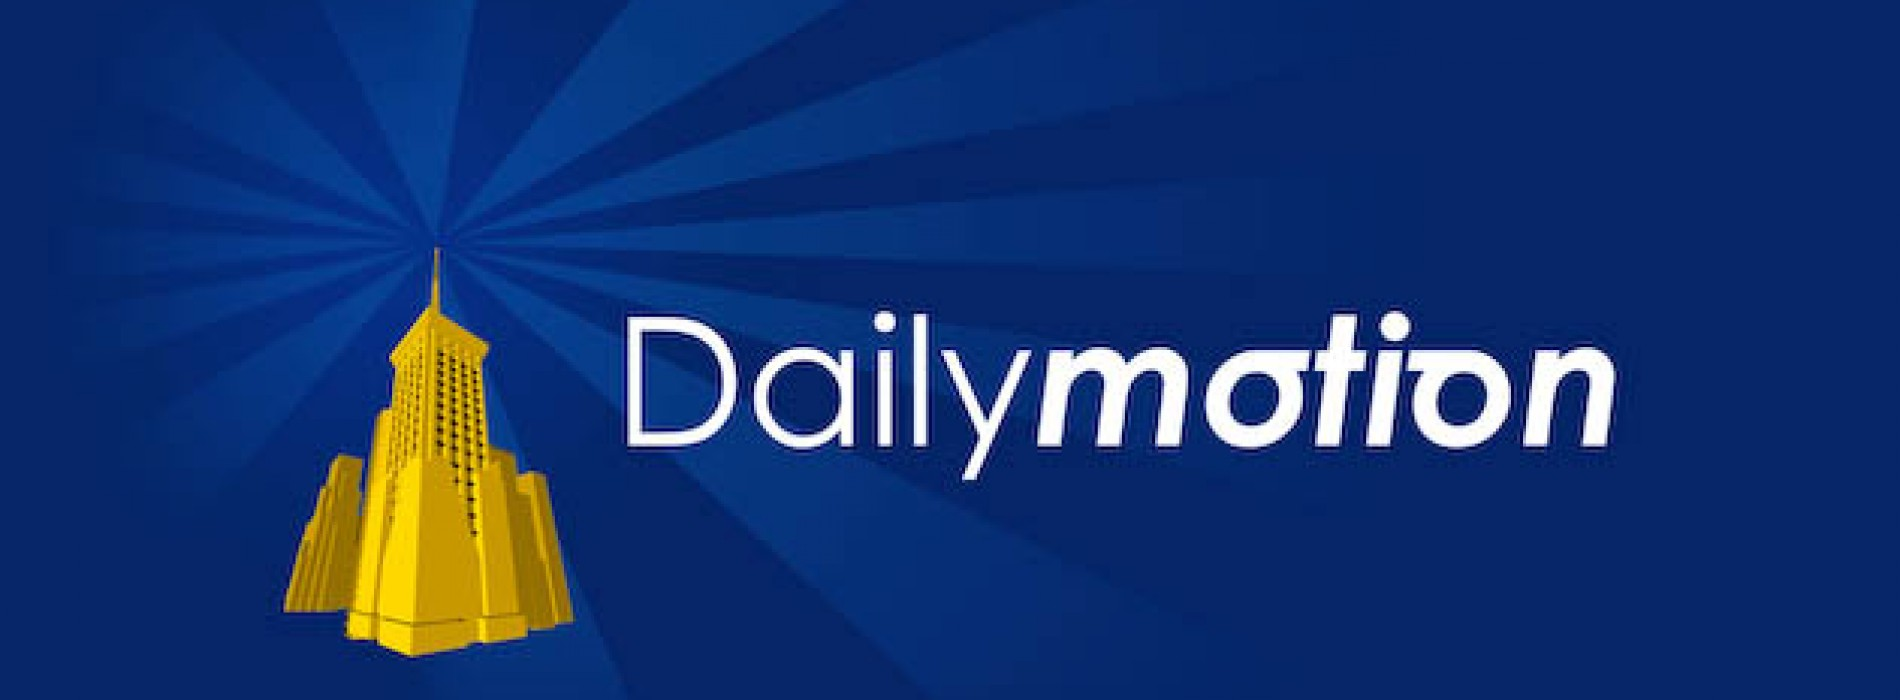 Official DailyMotion Android app released